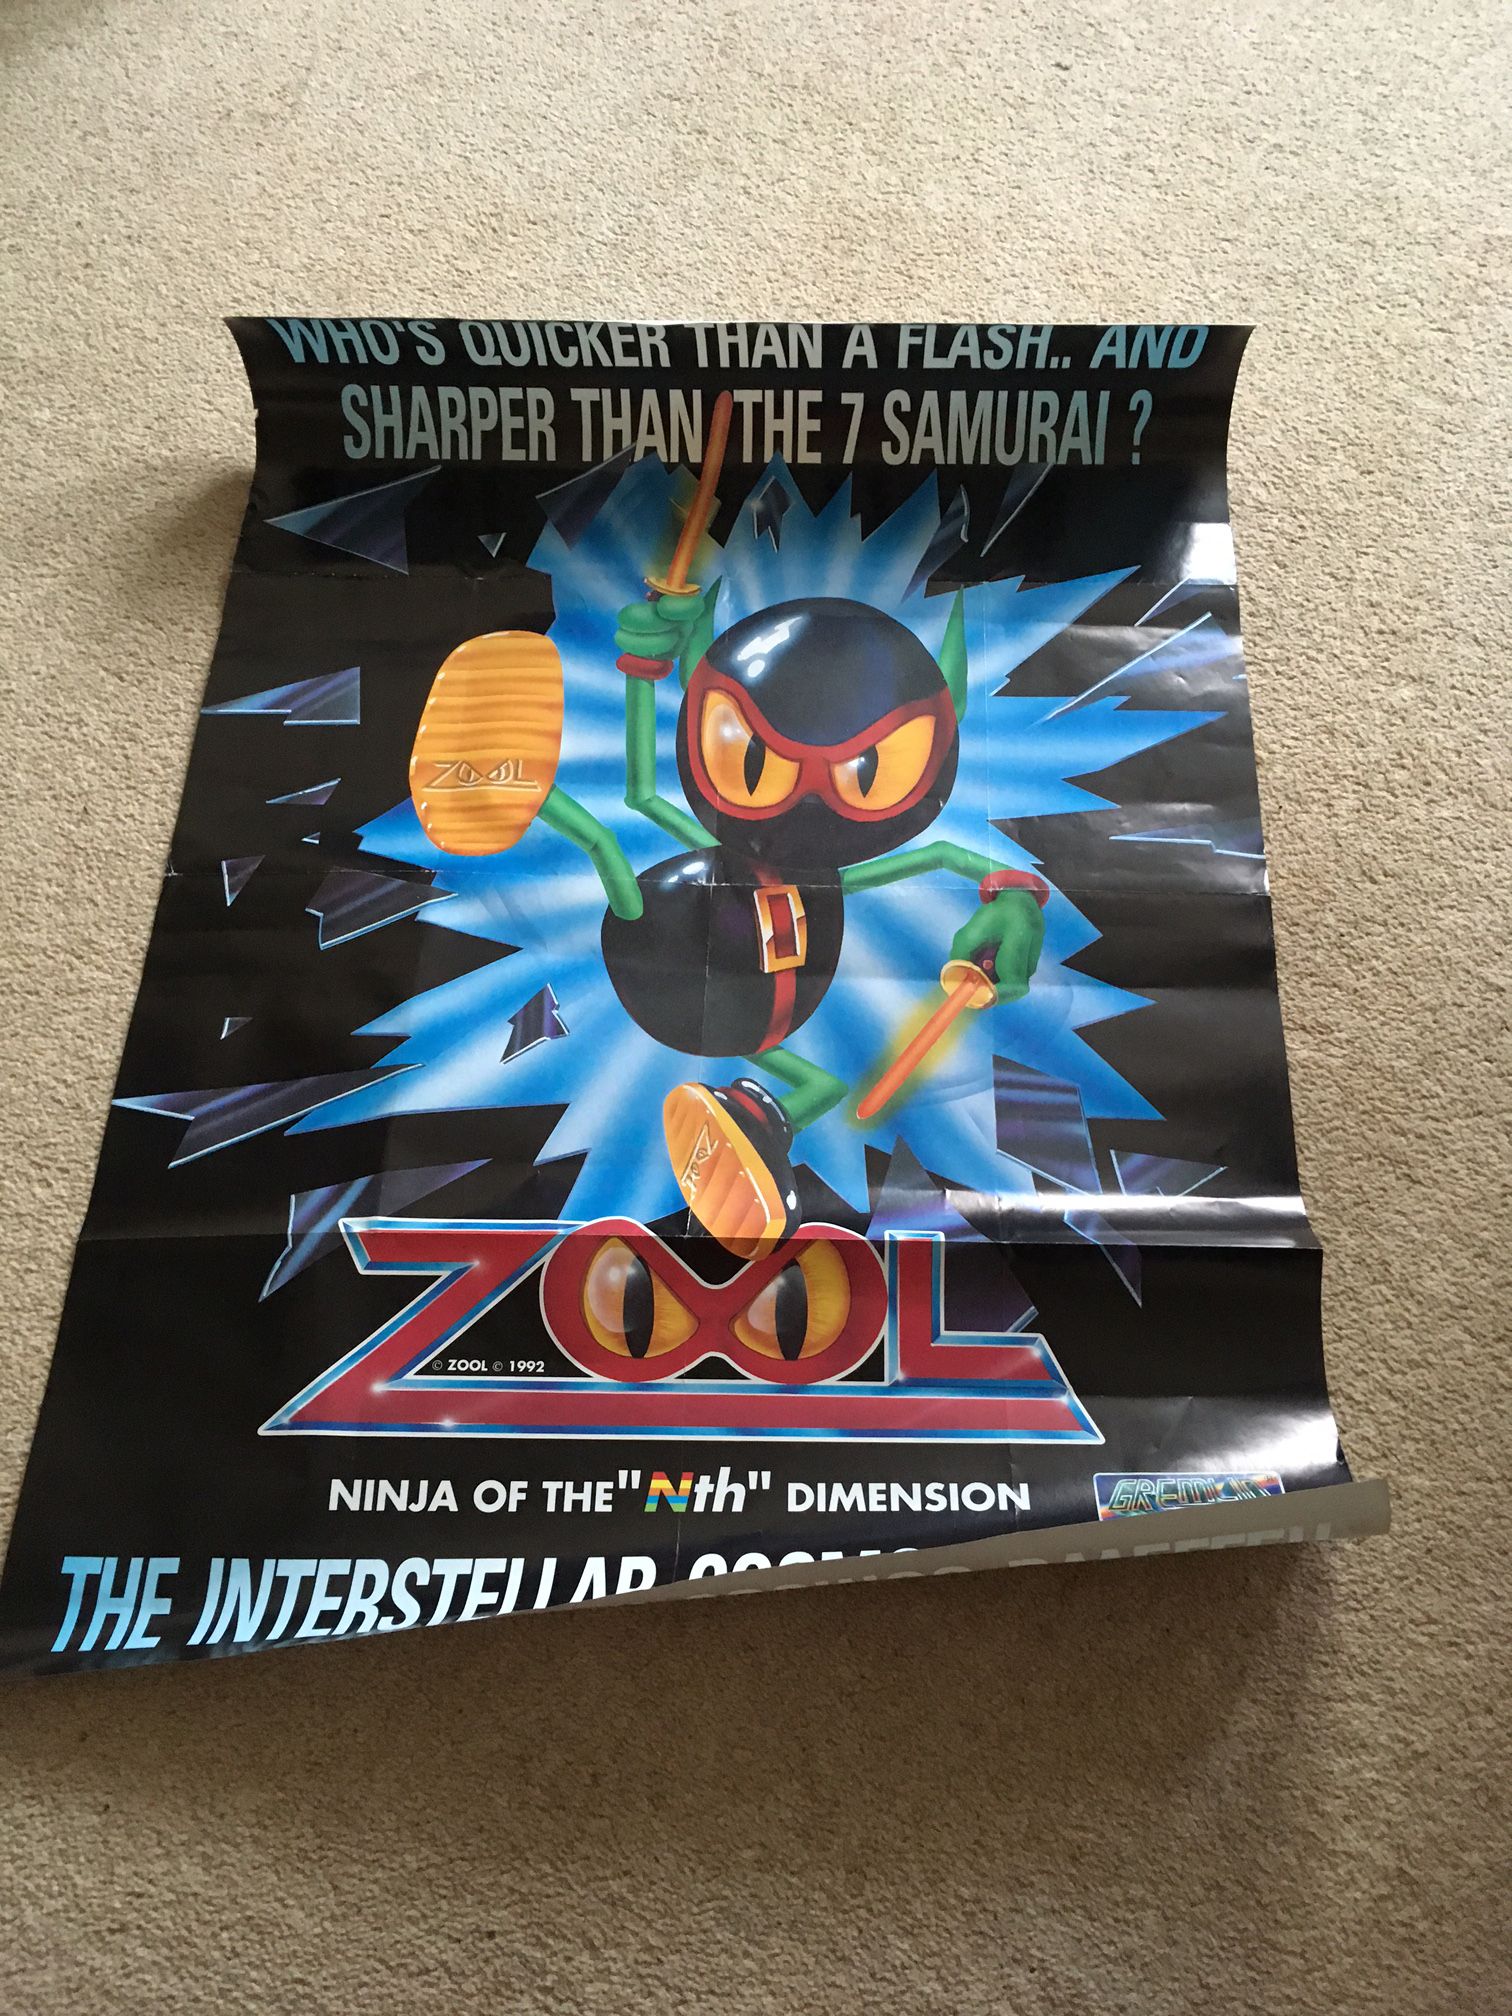 Zool Poster